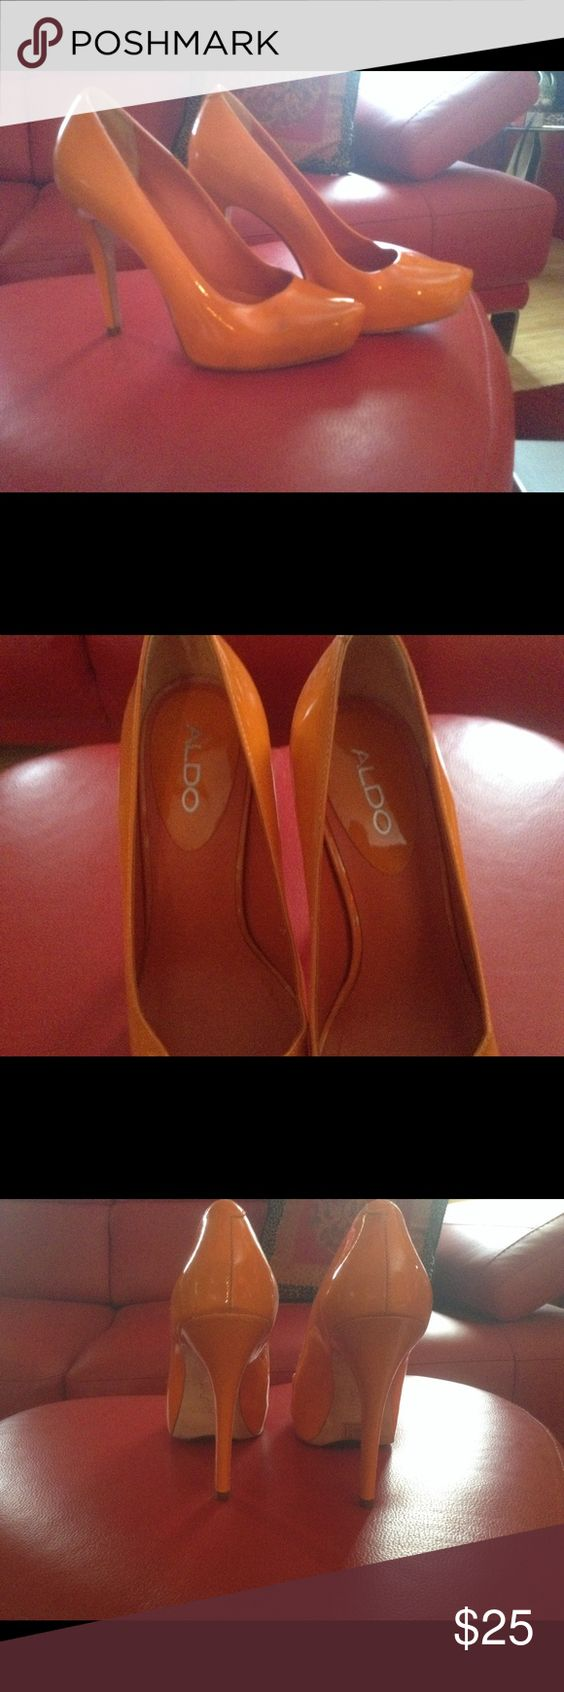 Aldo heels size 6 never worn Cleaning out my closet Aldo Shoes Heels